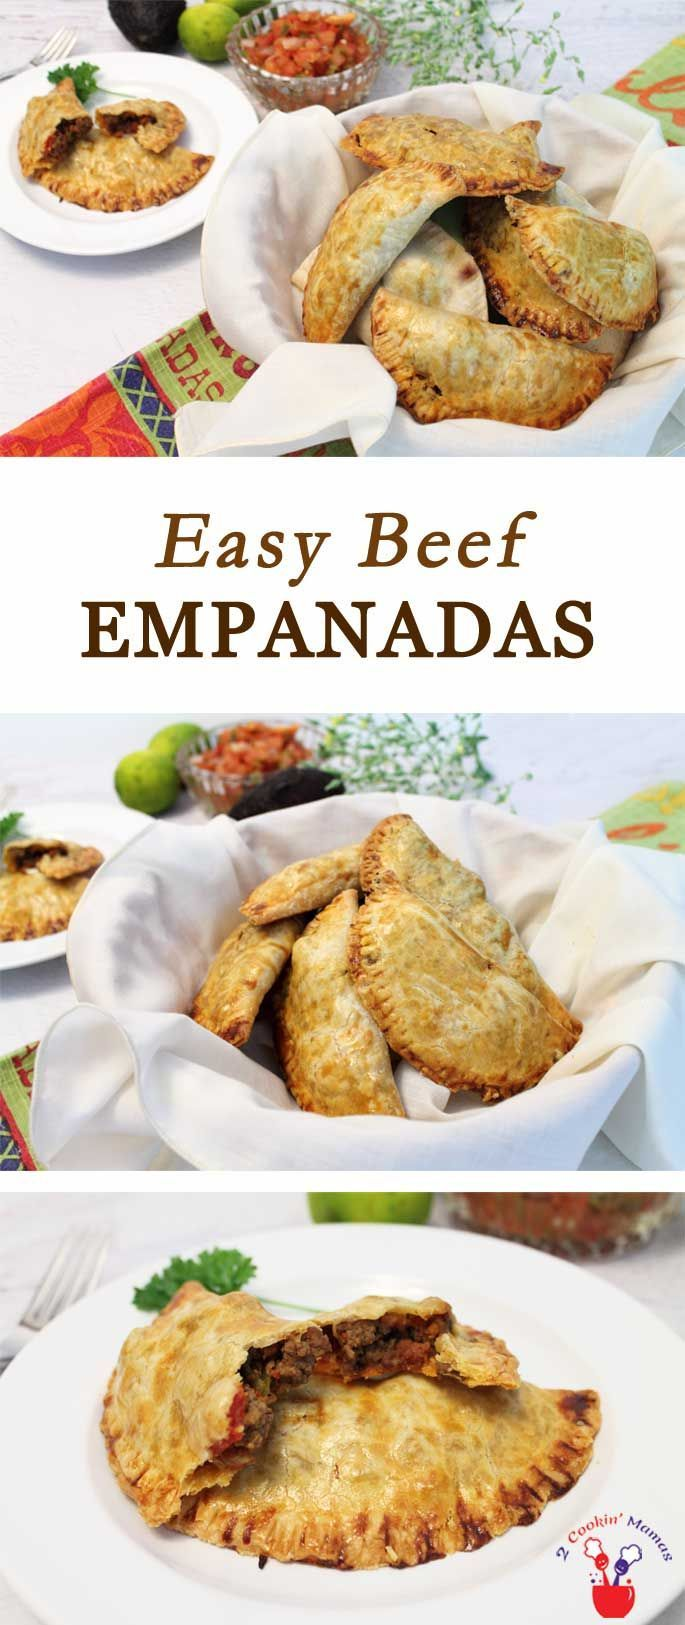 These easy beef empanadas are pockets of beef, chorizo and tomatoes baked up in a crispy pie crust. They go together in minutes & are always a party hit! via @2CookinMamas